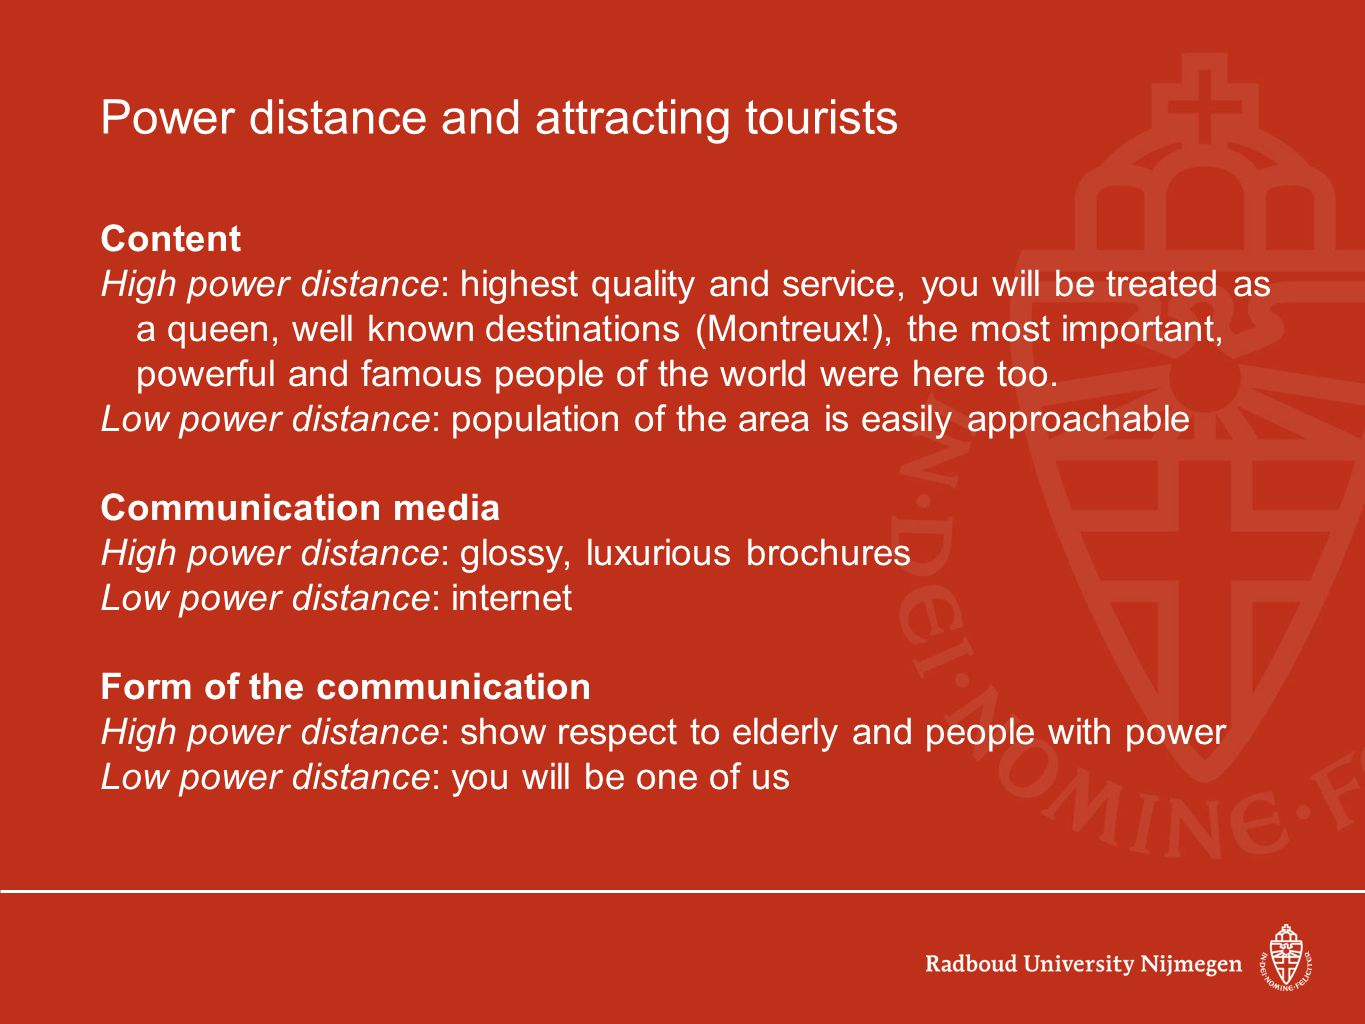 Power distance and attracting tourists